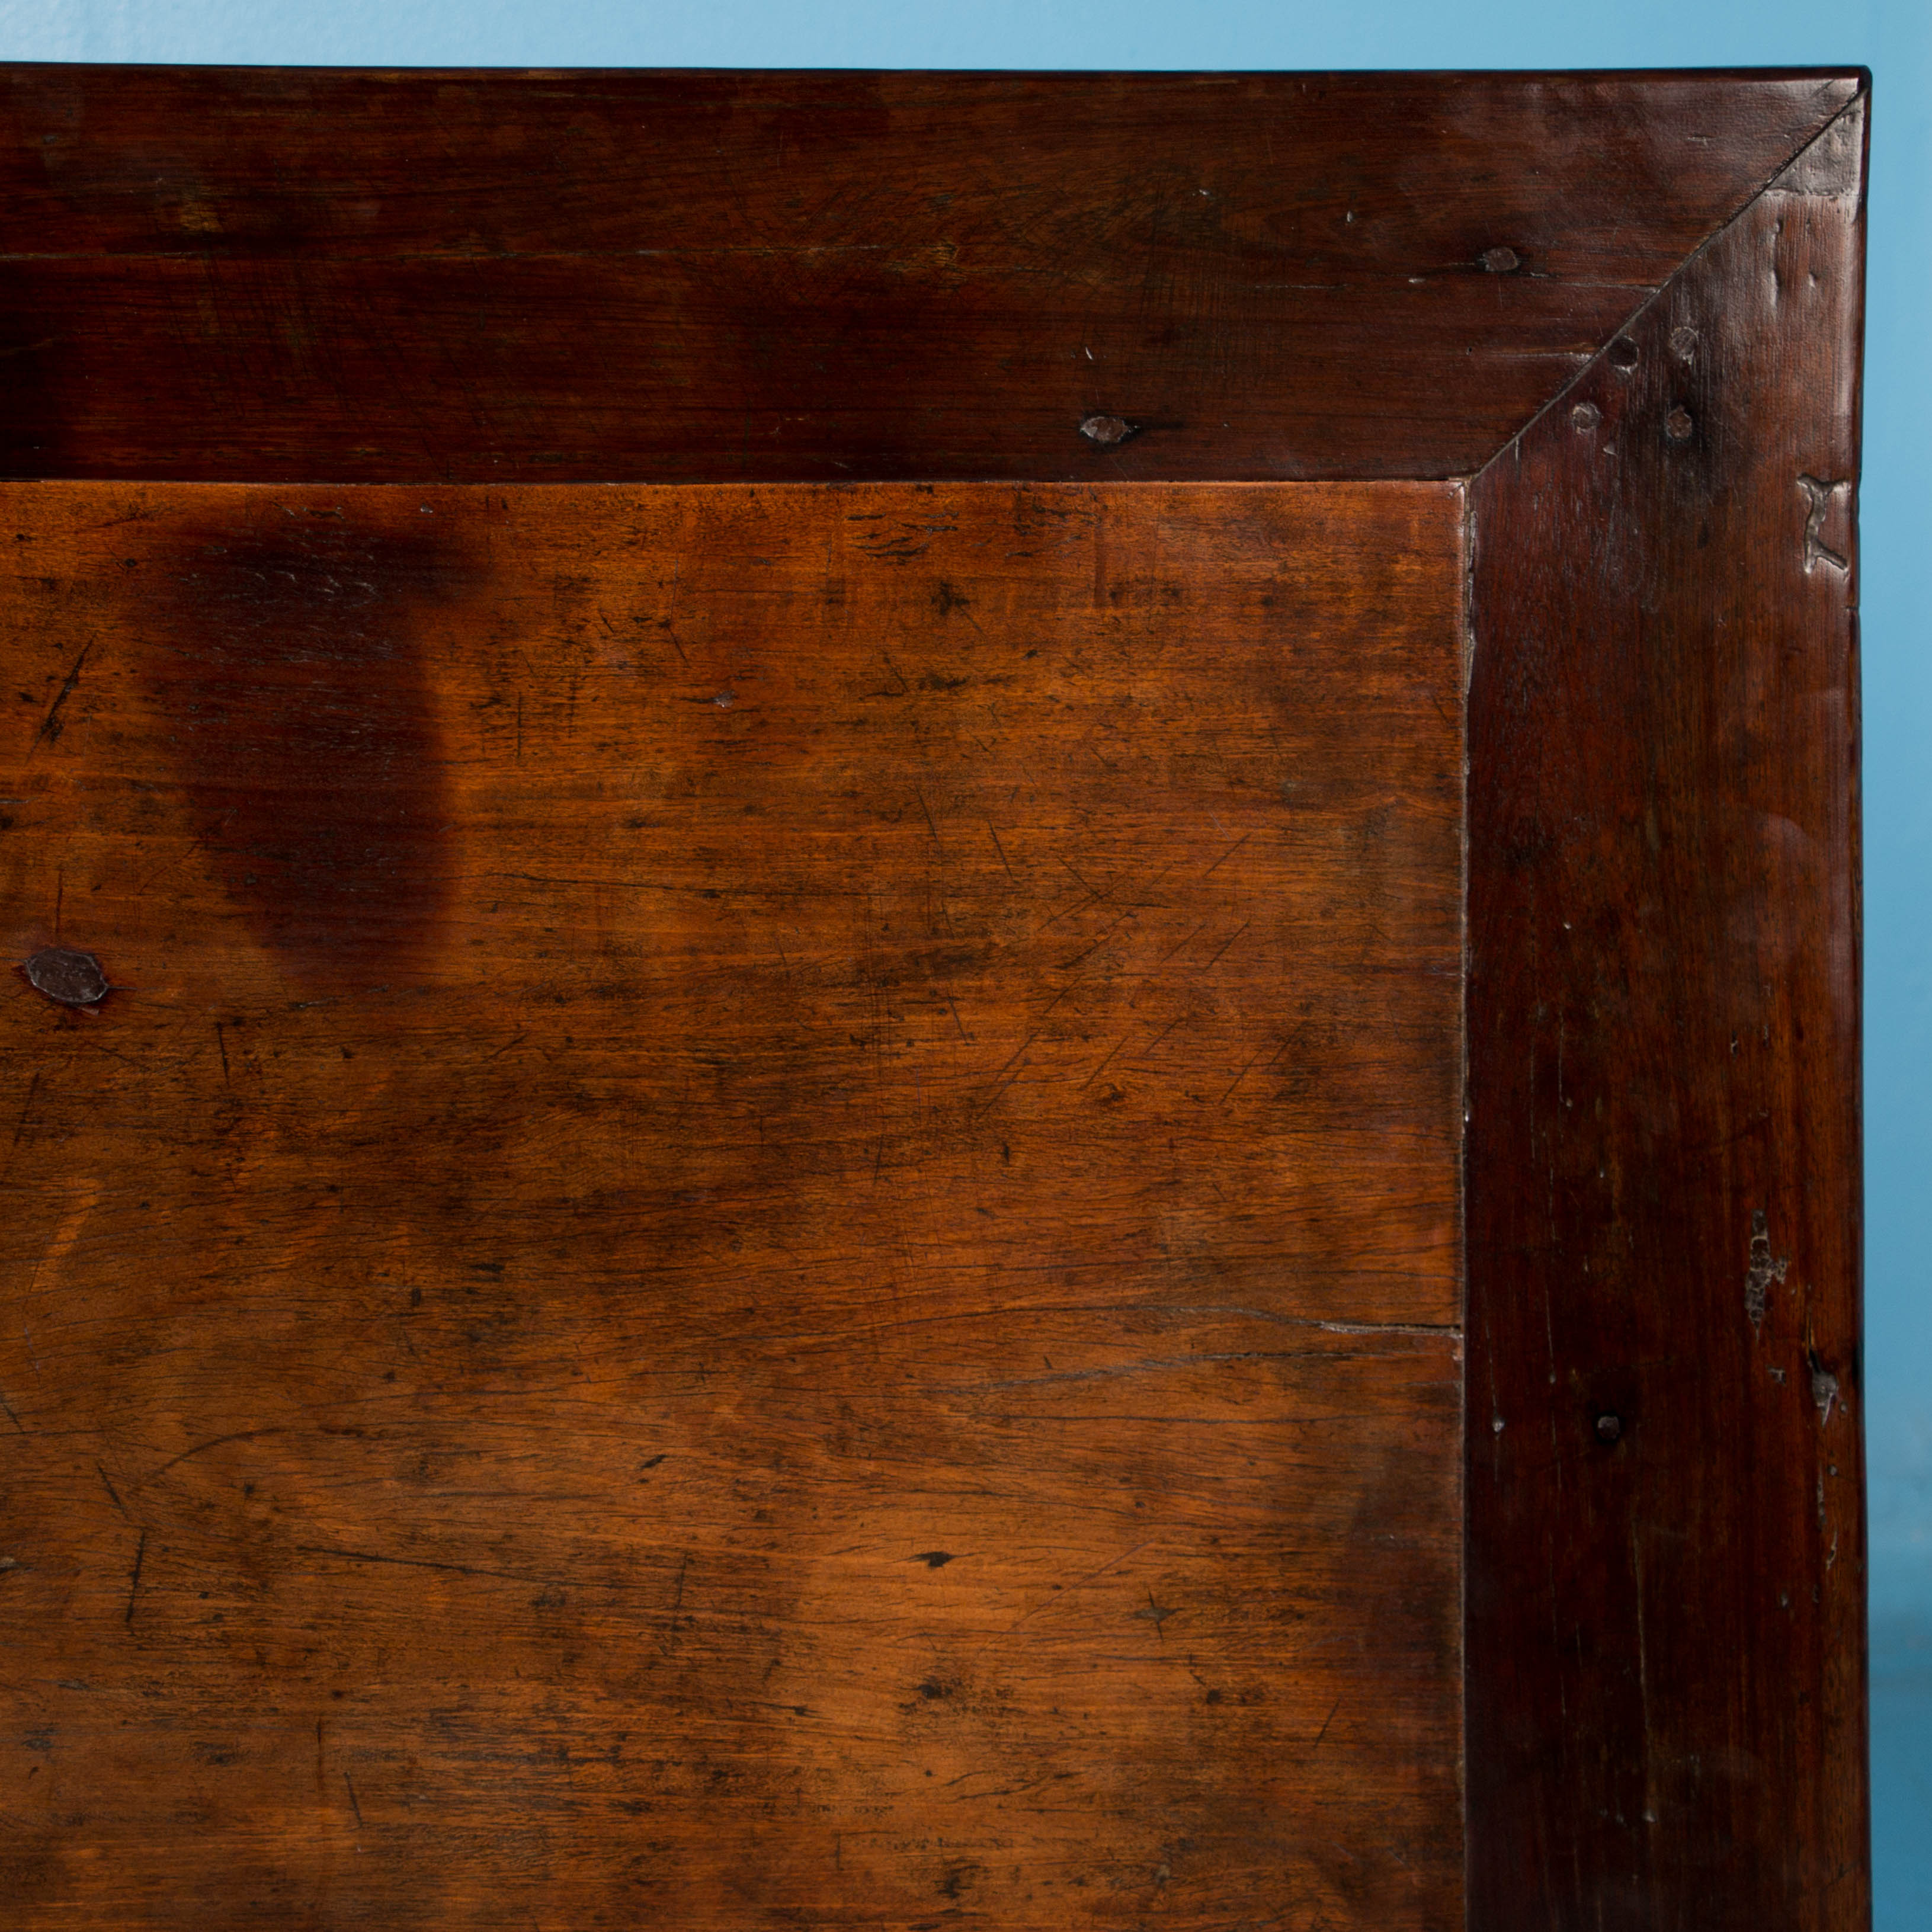 Antique Spanish Colonial Dining Table From the Philippines | eBay